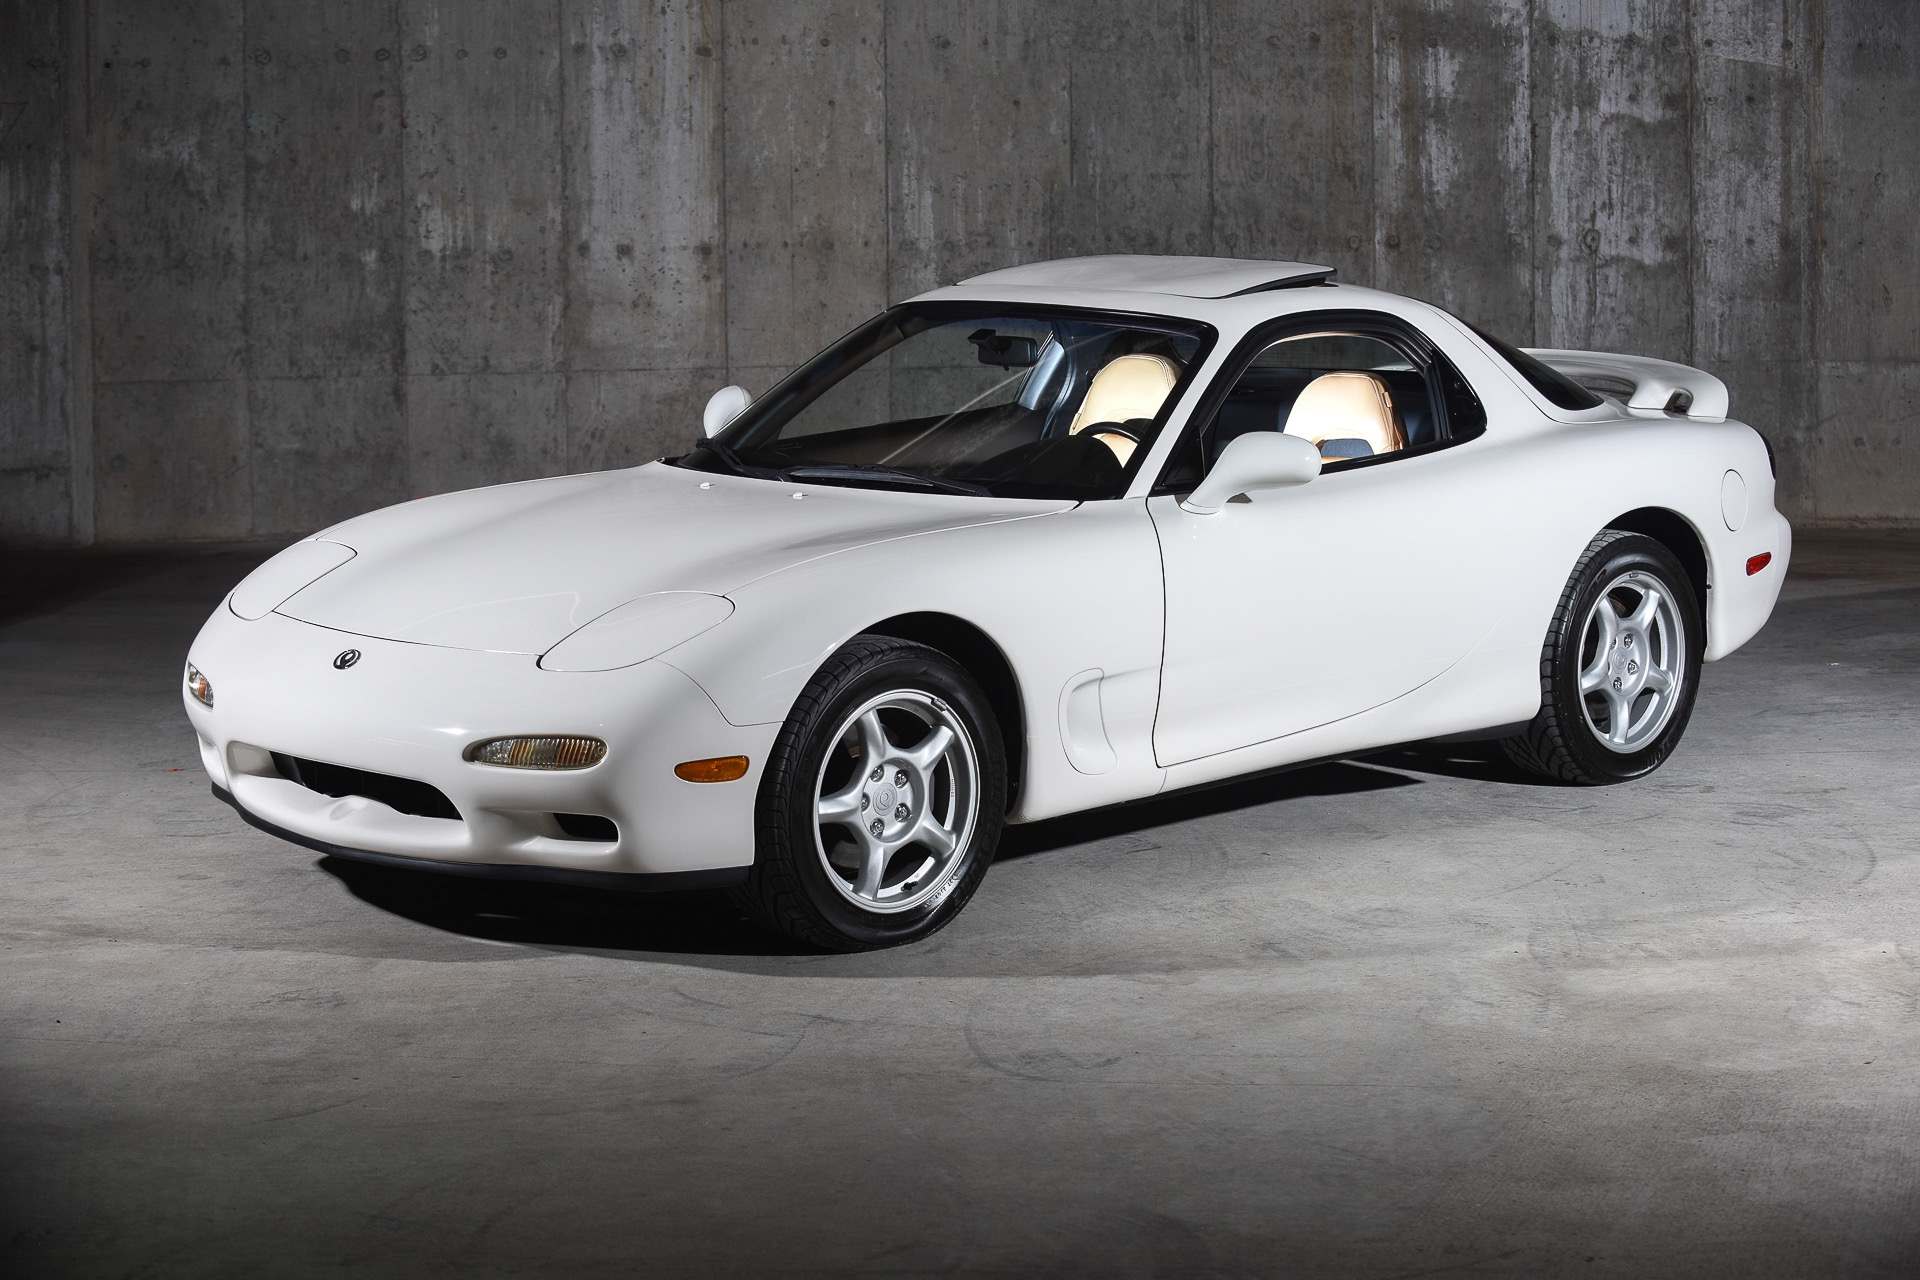 1994 mazda rx 7 turbo stock 75 for sale near valley. Black Bedroom Furniture Sets. Home Design Ideas